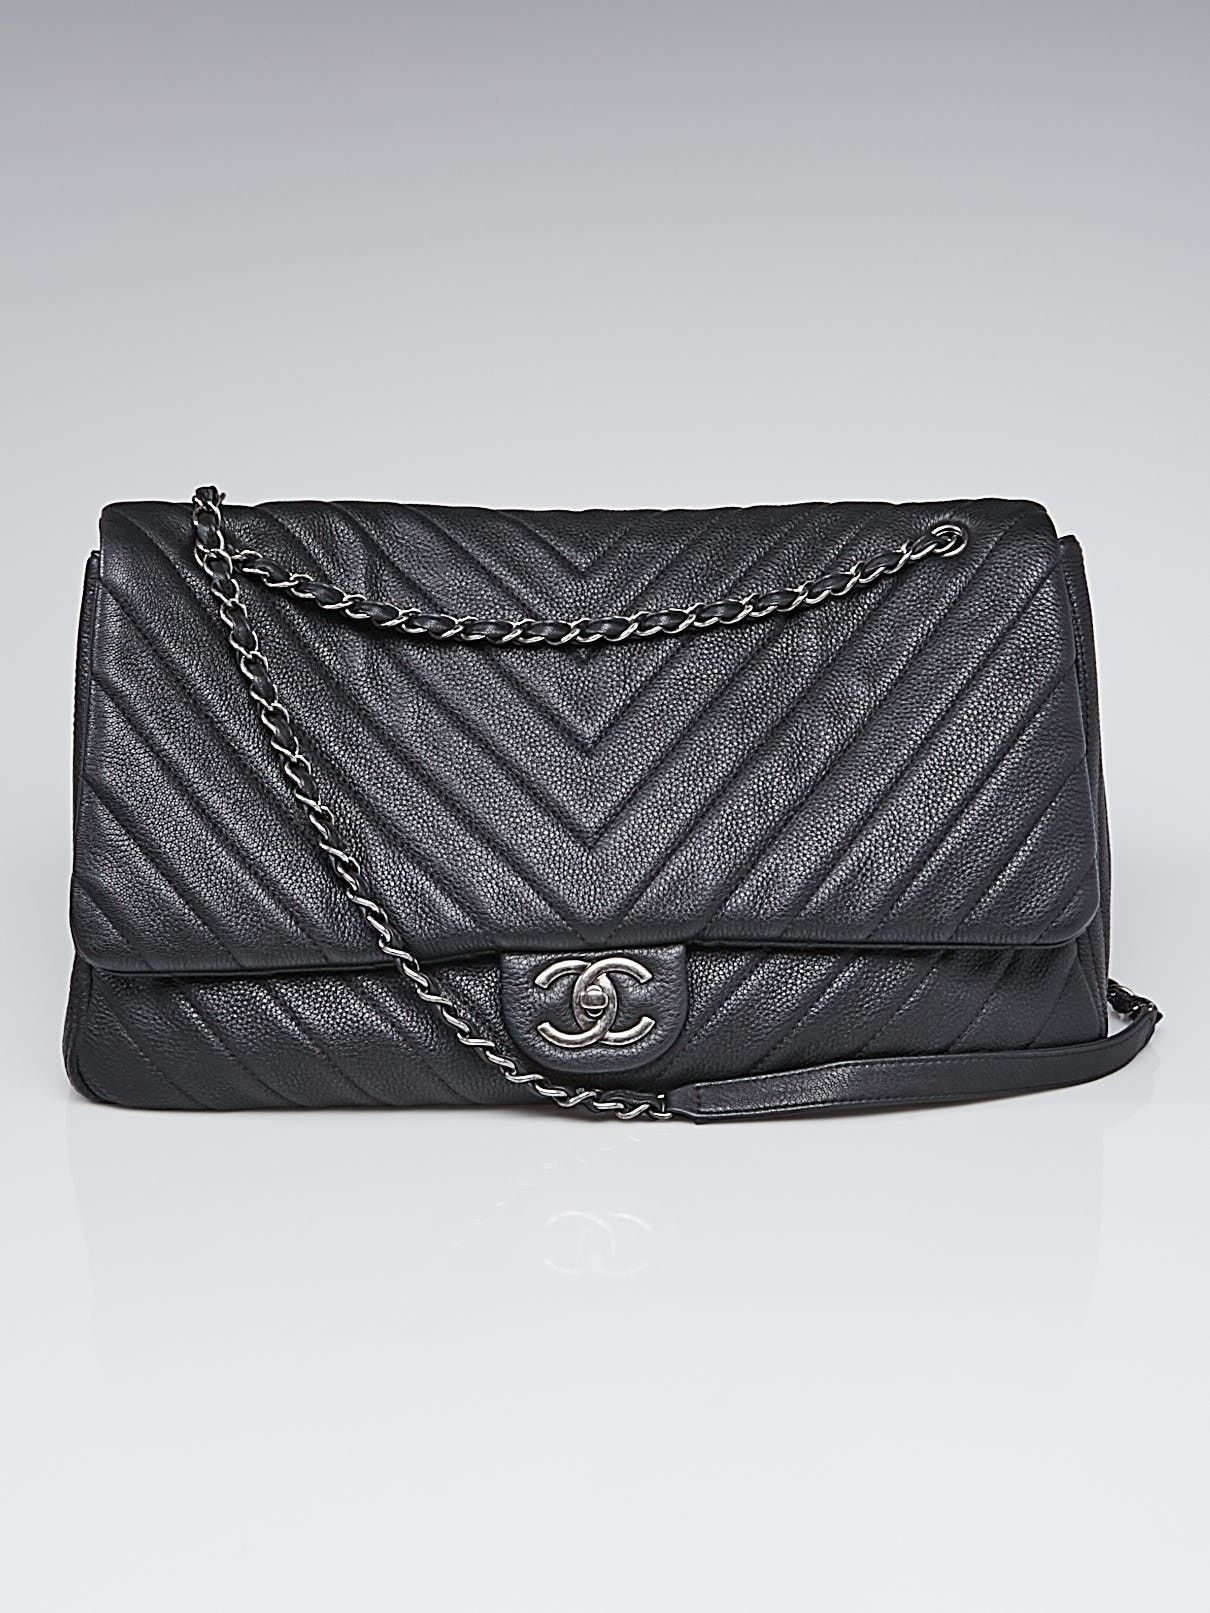 Chanel Black Chevron Quilted Lambskin Leather Classic Medium Double Flap Bag Used Chanel Bags Chanel Chevron Bag Chanel Bag